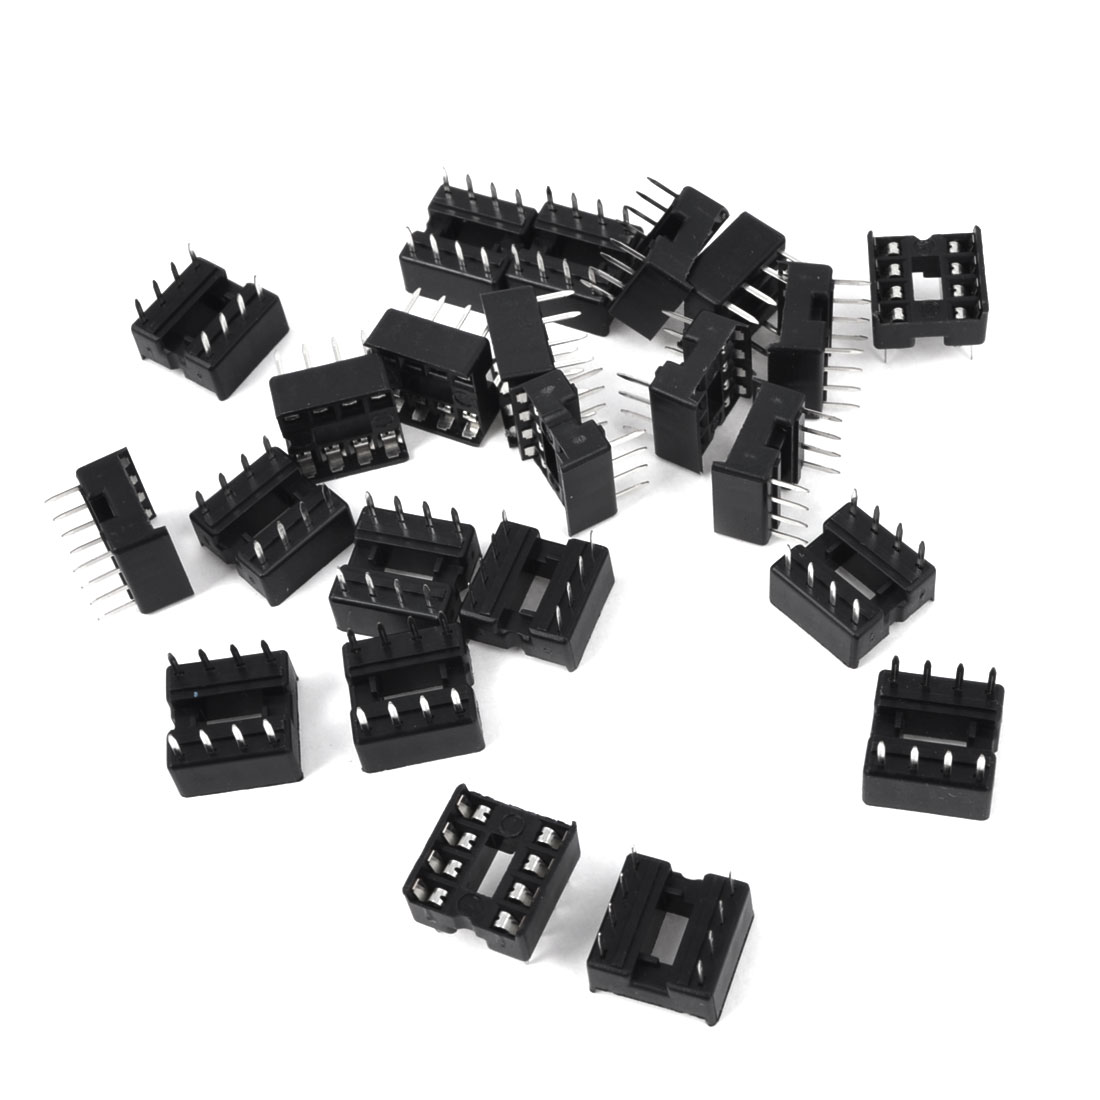 2.54mm Pitch Through Hole 8 Pins DIP IC Socket PCB Board Adapter 25 Pcs